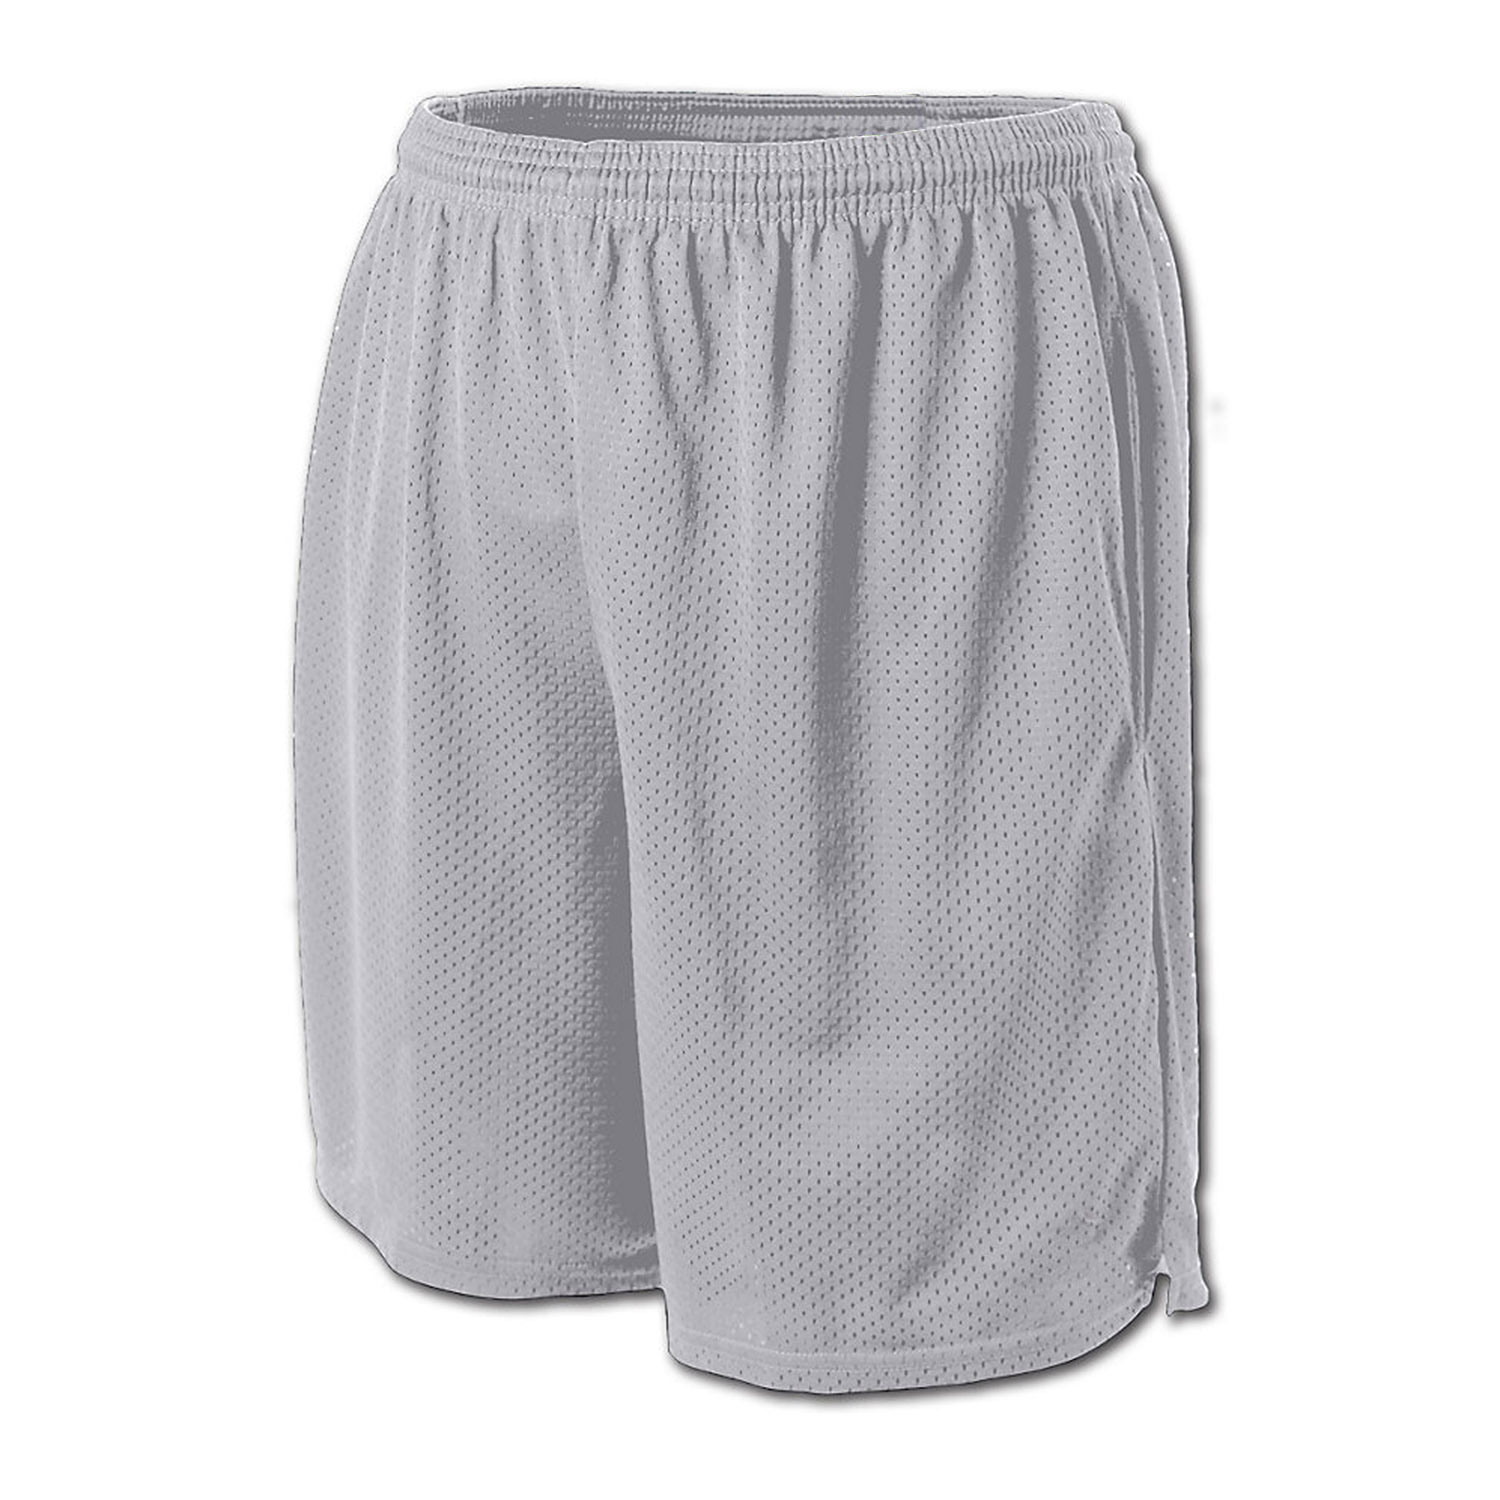 Champion Tactical Mesh Shorts with Pockets